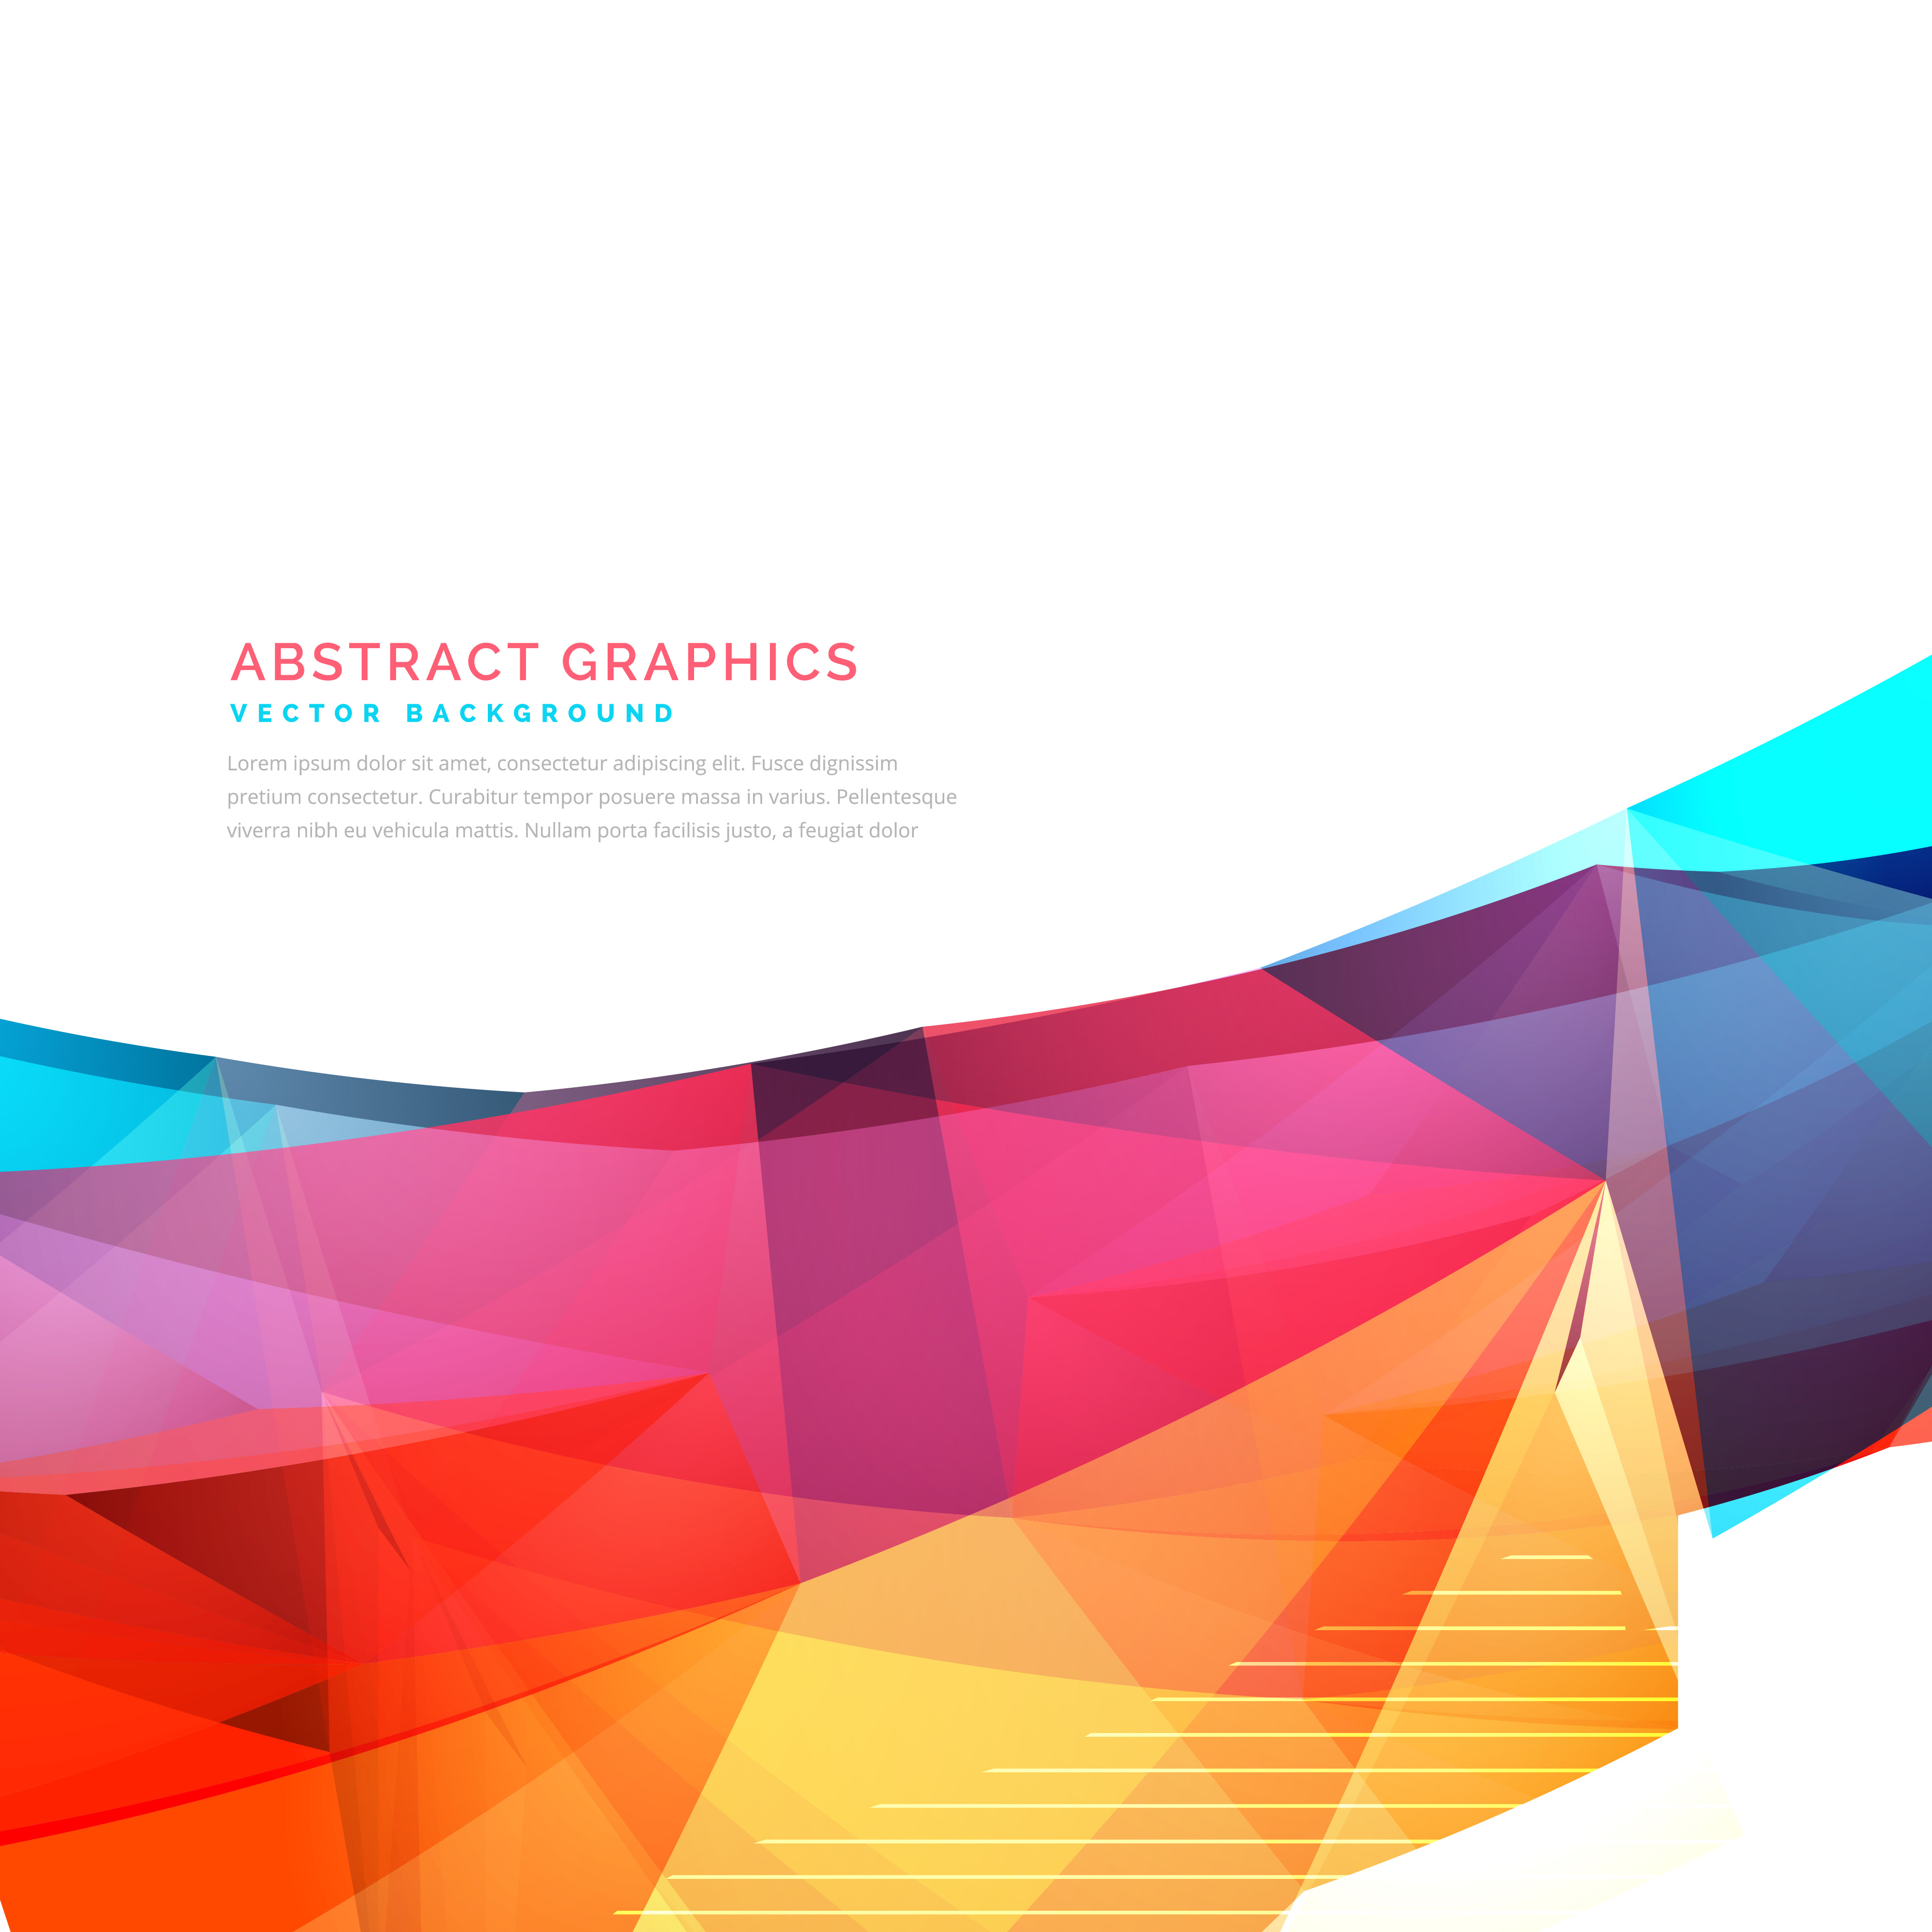 Color Graphic Design: Colorful Abstract Background Design